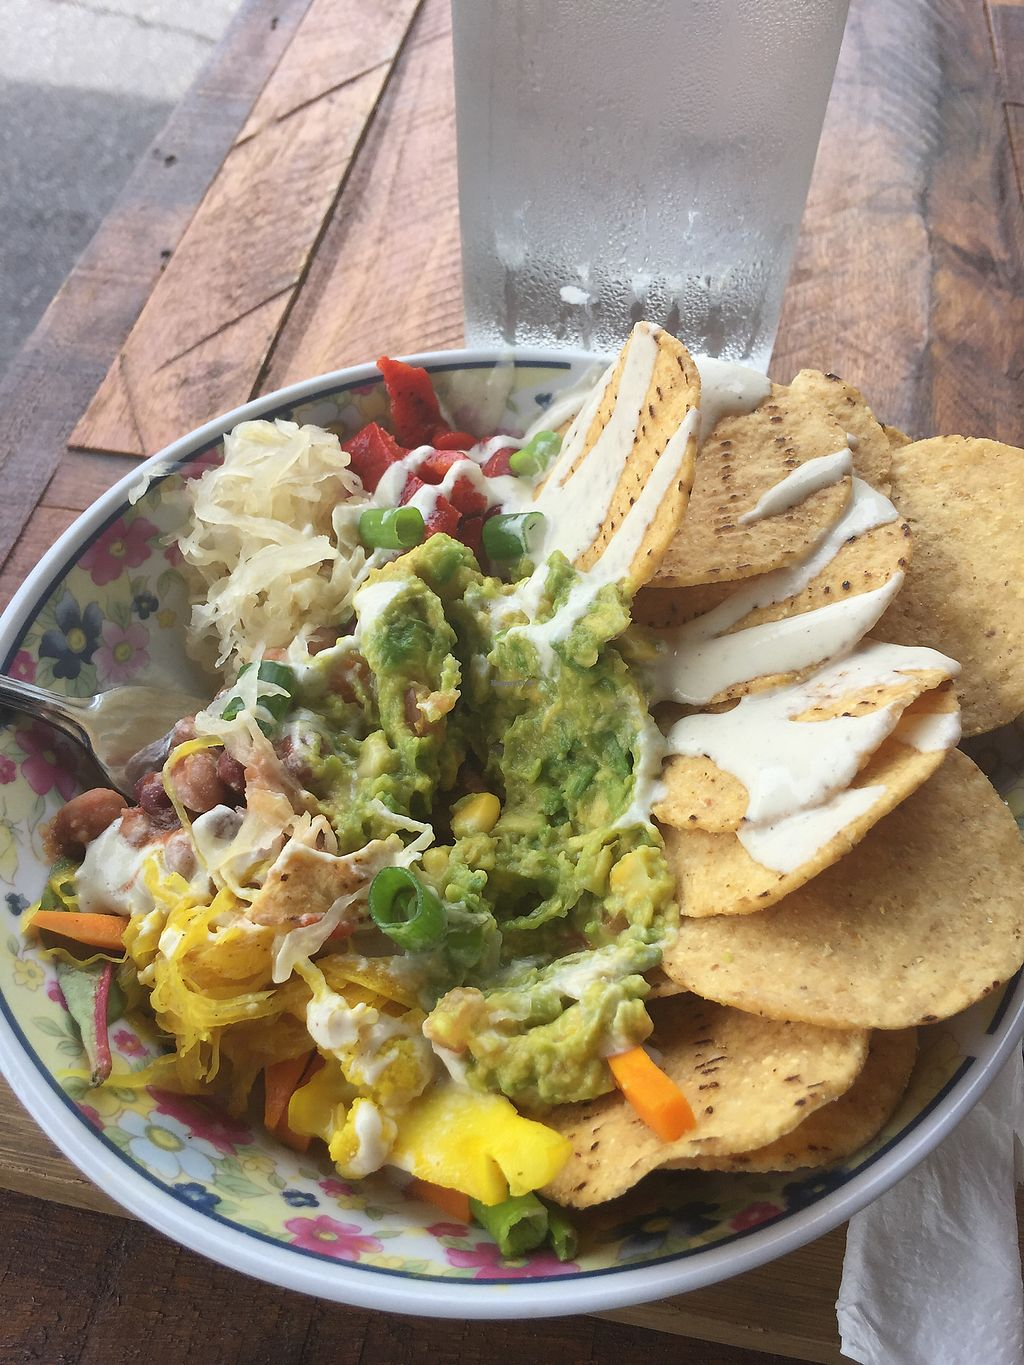 "Photo of Beans & Greens Cafe  by <a href=""/members/profile/AaronTimo"">AaronTimo</a> <br/>Burrito bowl <br/> March 24, 2018  - <a href='/contact/abuse/image/65680/375075'>Report</a>"